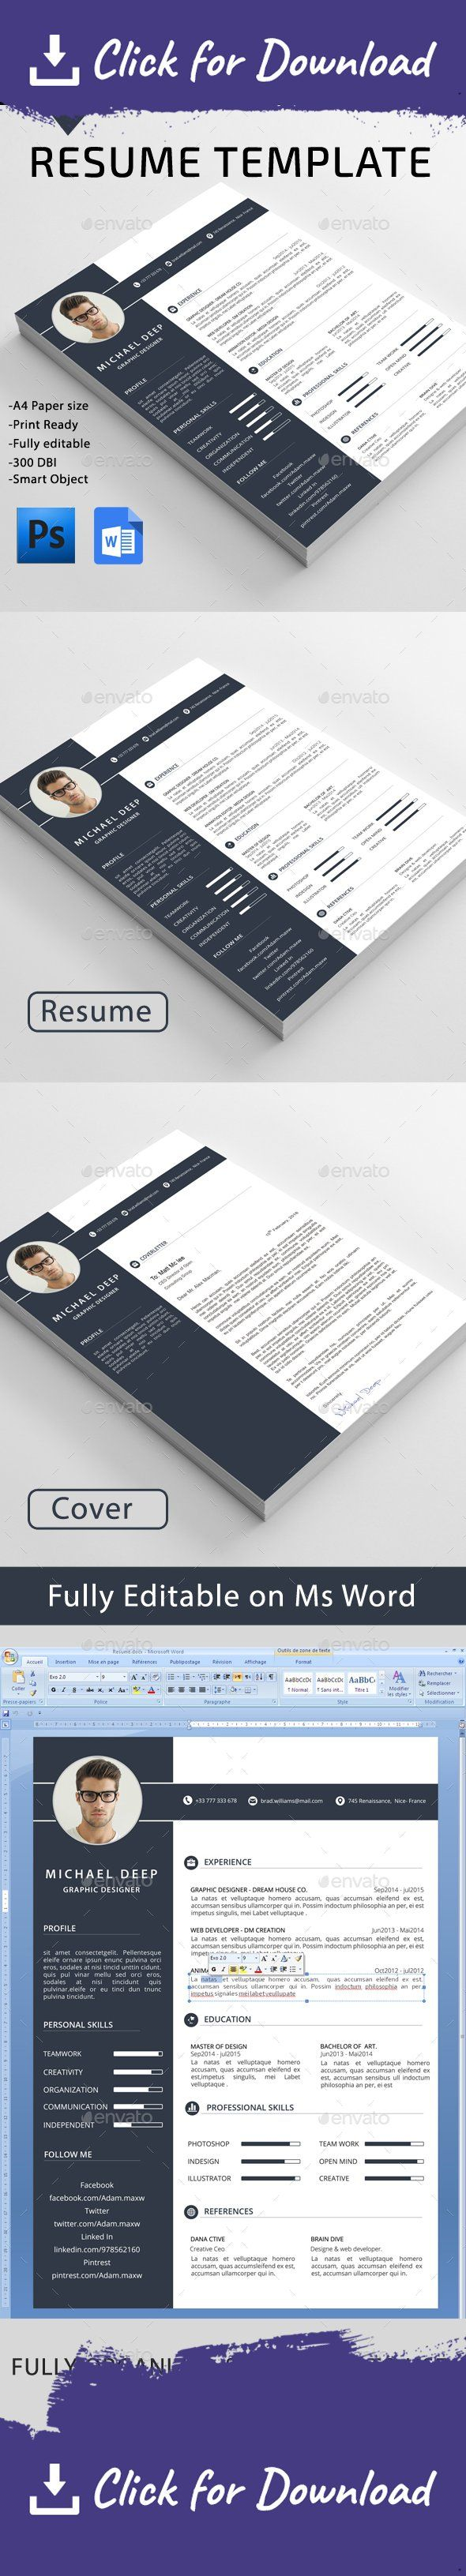 "3-piece resume, a4, blue resume, bright, career, clean, clean cv, clean resume, cover letter, creative resume, curriculum vitae, cv, cv design, cv resume, cv template, design, editable, elegant resume, job, light, professional resume, red resume, resume, resume template, simple, simple resume, swiss resume, white, work Resume ""Resume"" is the super clean, modern and professional resume cv template to help you land that great job. The flexible page designs are easy to use and customise, s..."